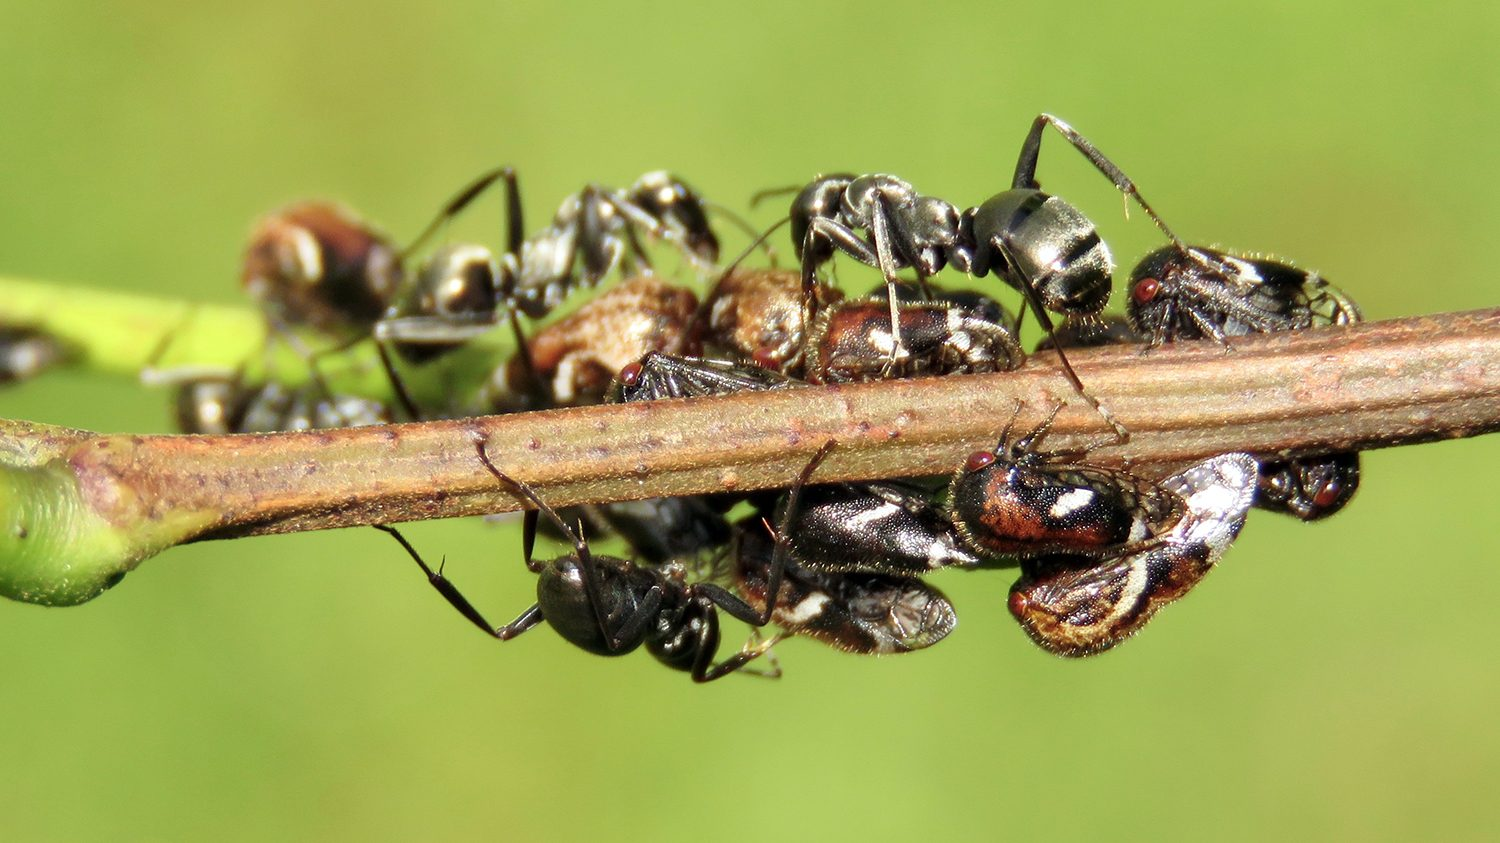 Ants collecting honeydew on a plant